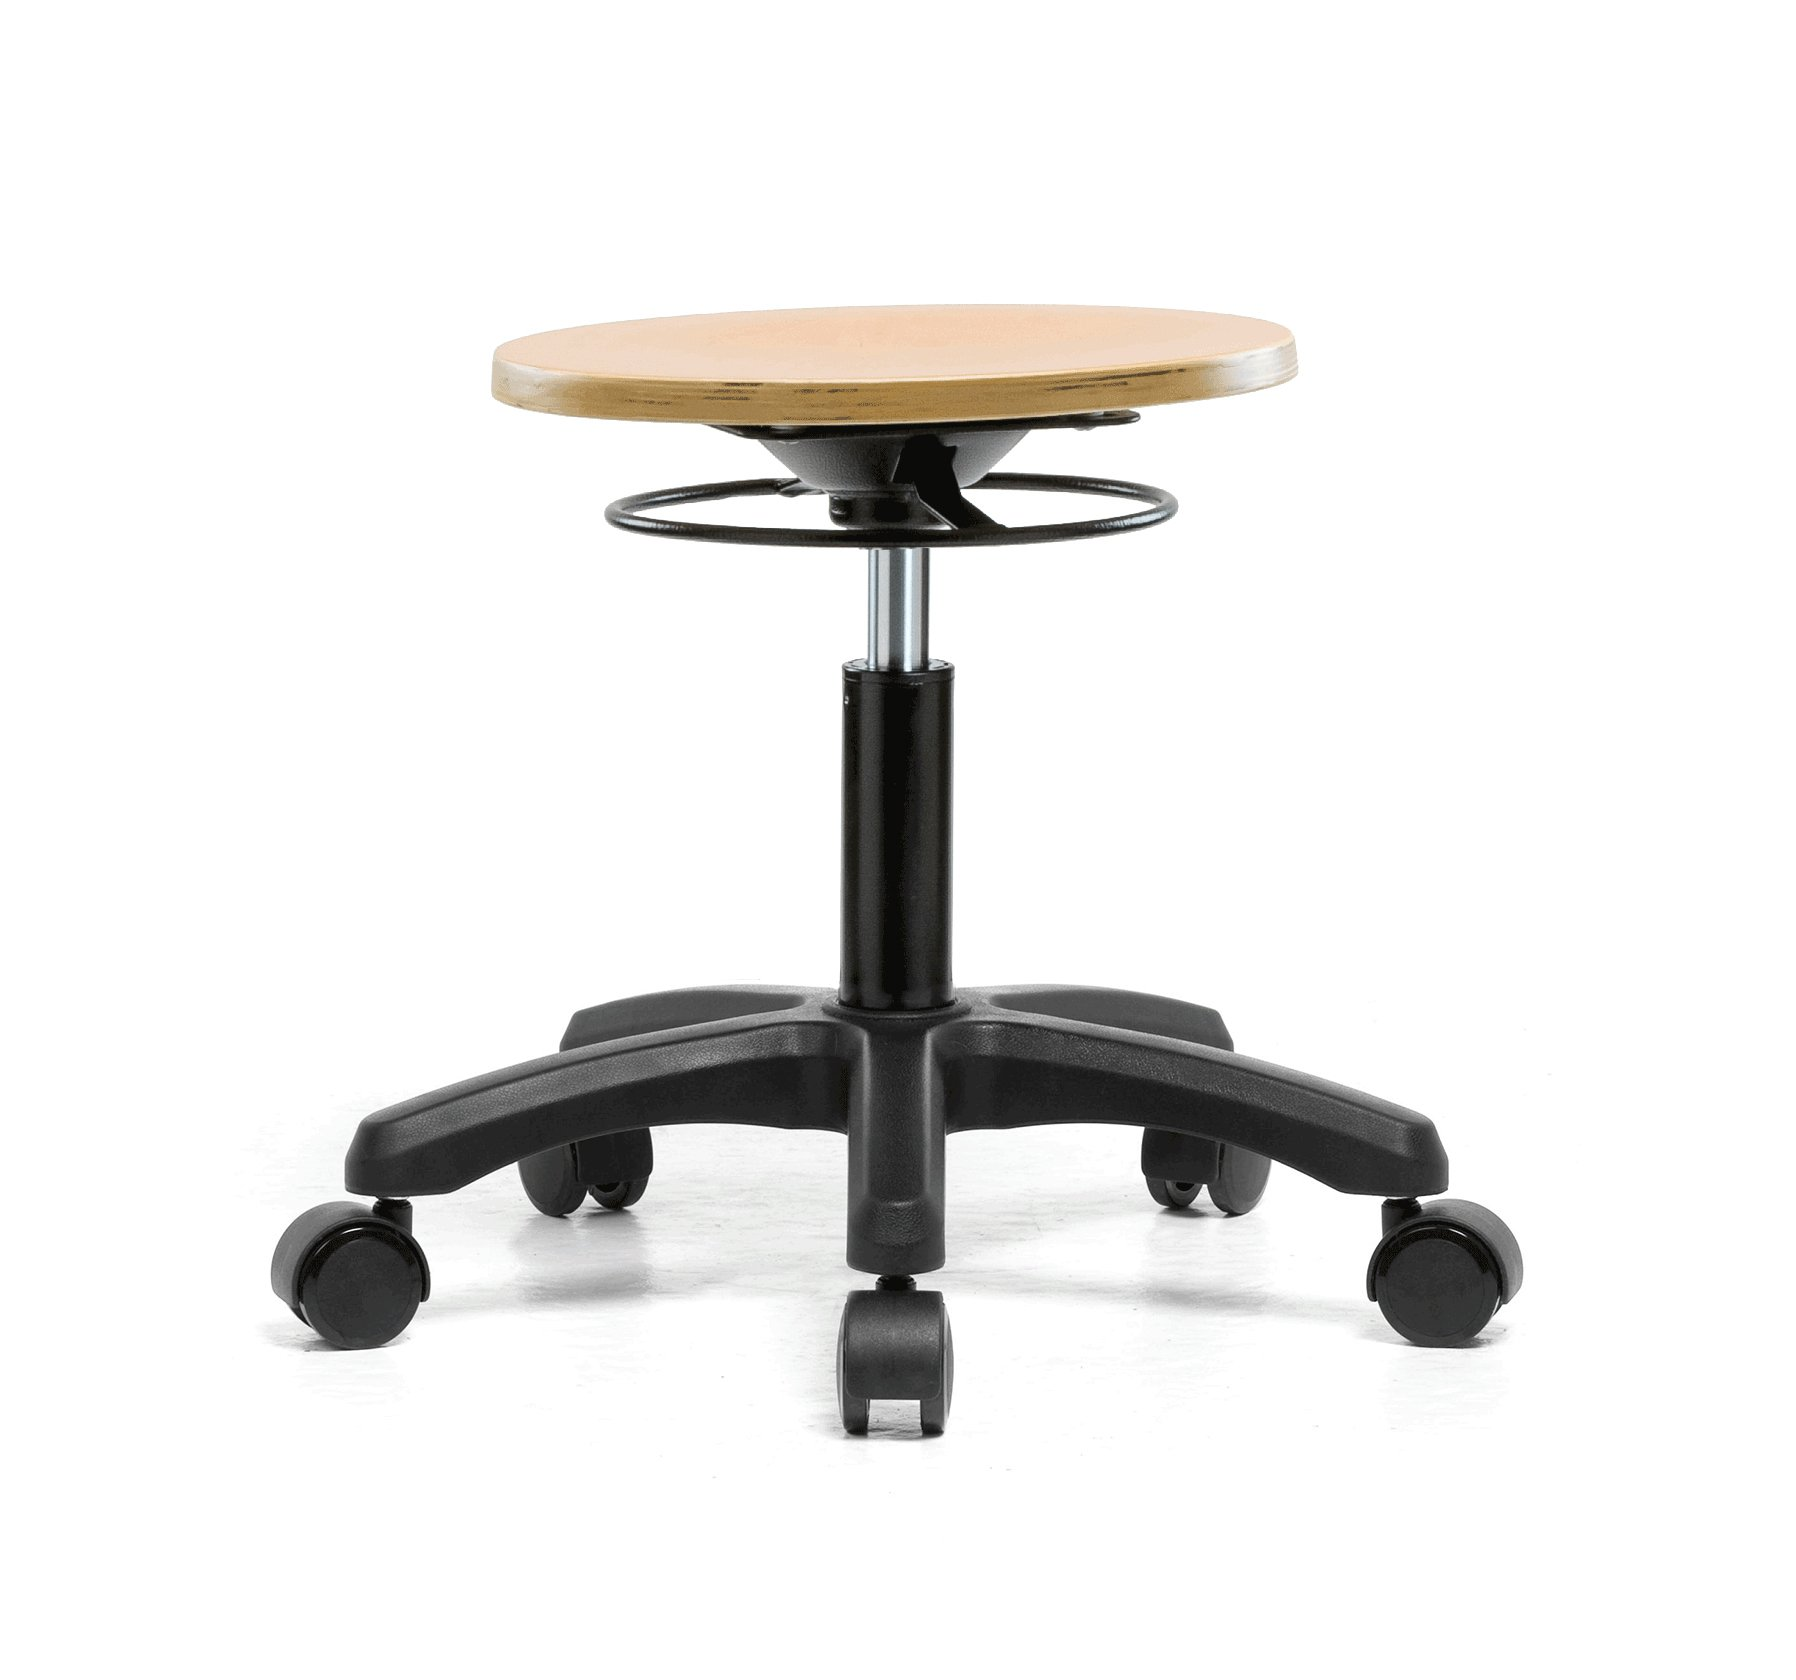 Perch Wood Rolling Pneumatic Stool, All Around Adjustment Ring and Wheels for Carpet or Linoleum, Desk Height